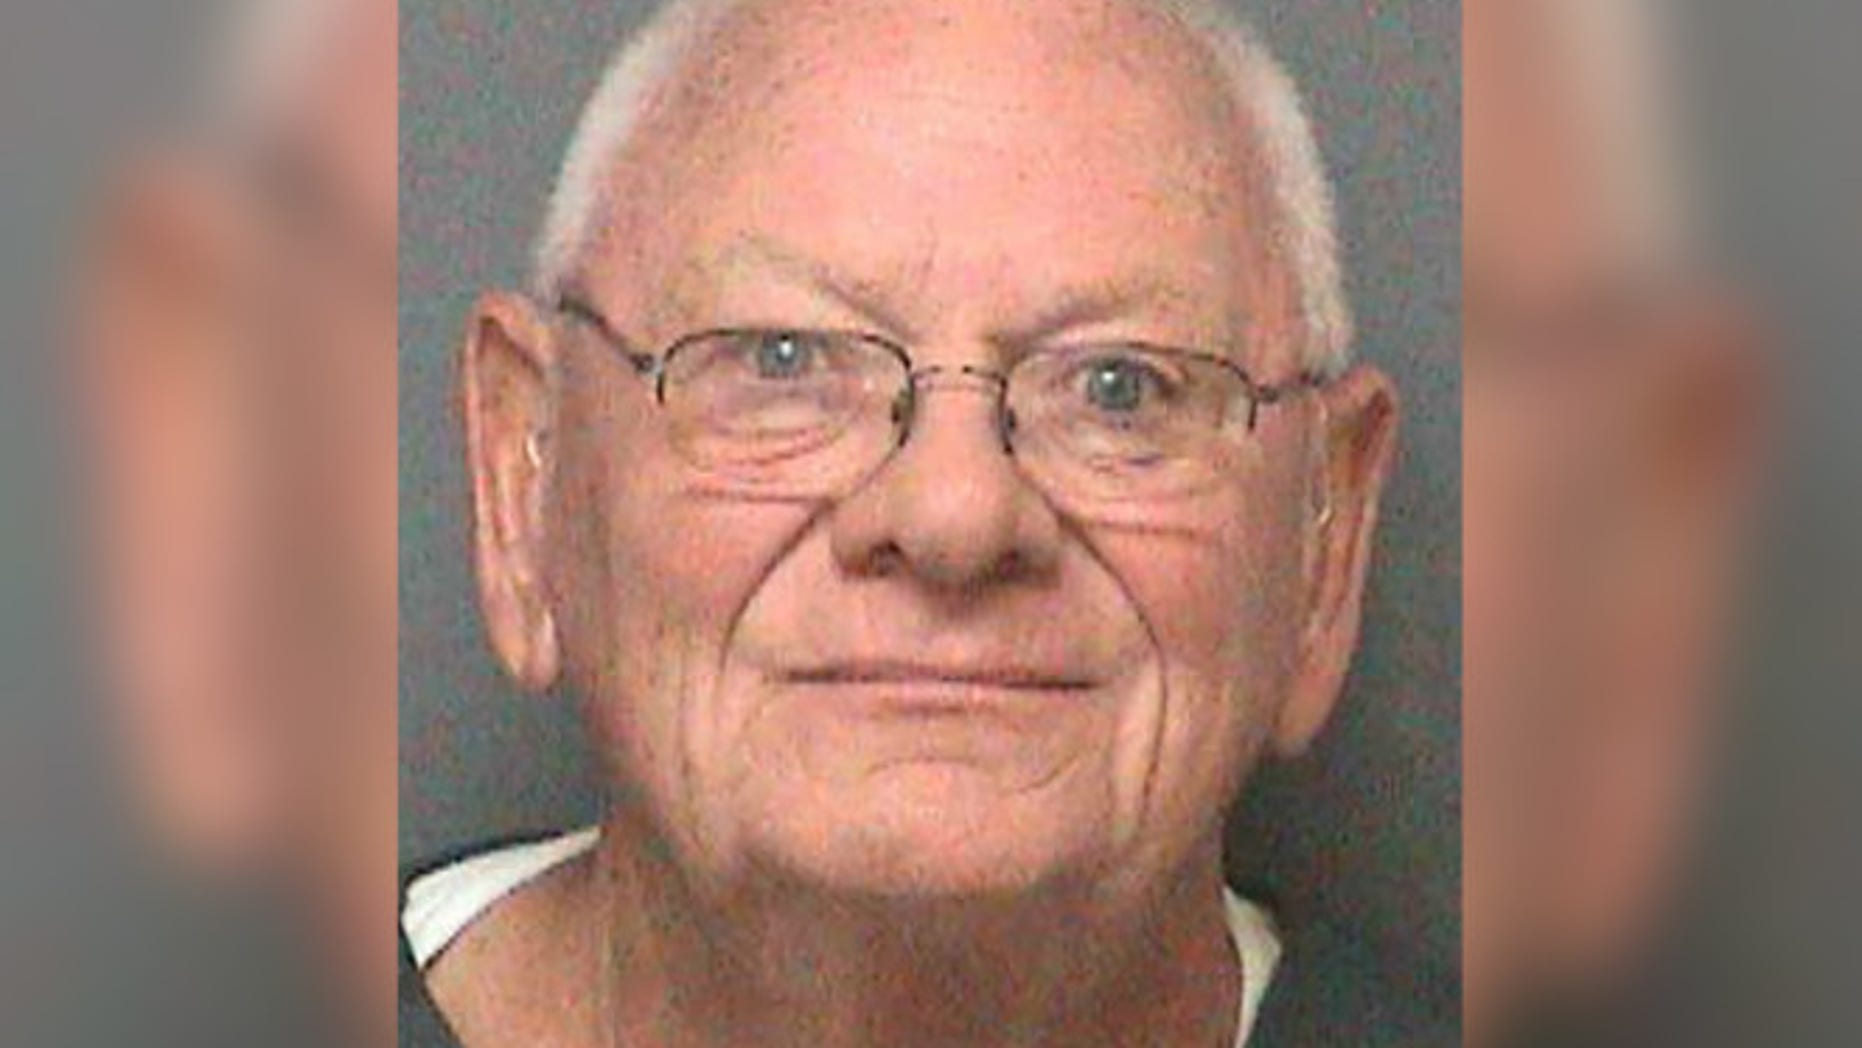 Elmo Griggs, a 75-year-old pathology vendor in Indiana, was arrested on suspicion of drunken driving — found with body parts in his car, authorities say.